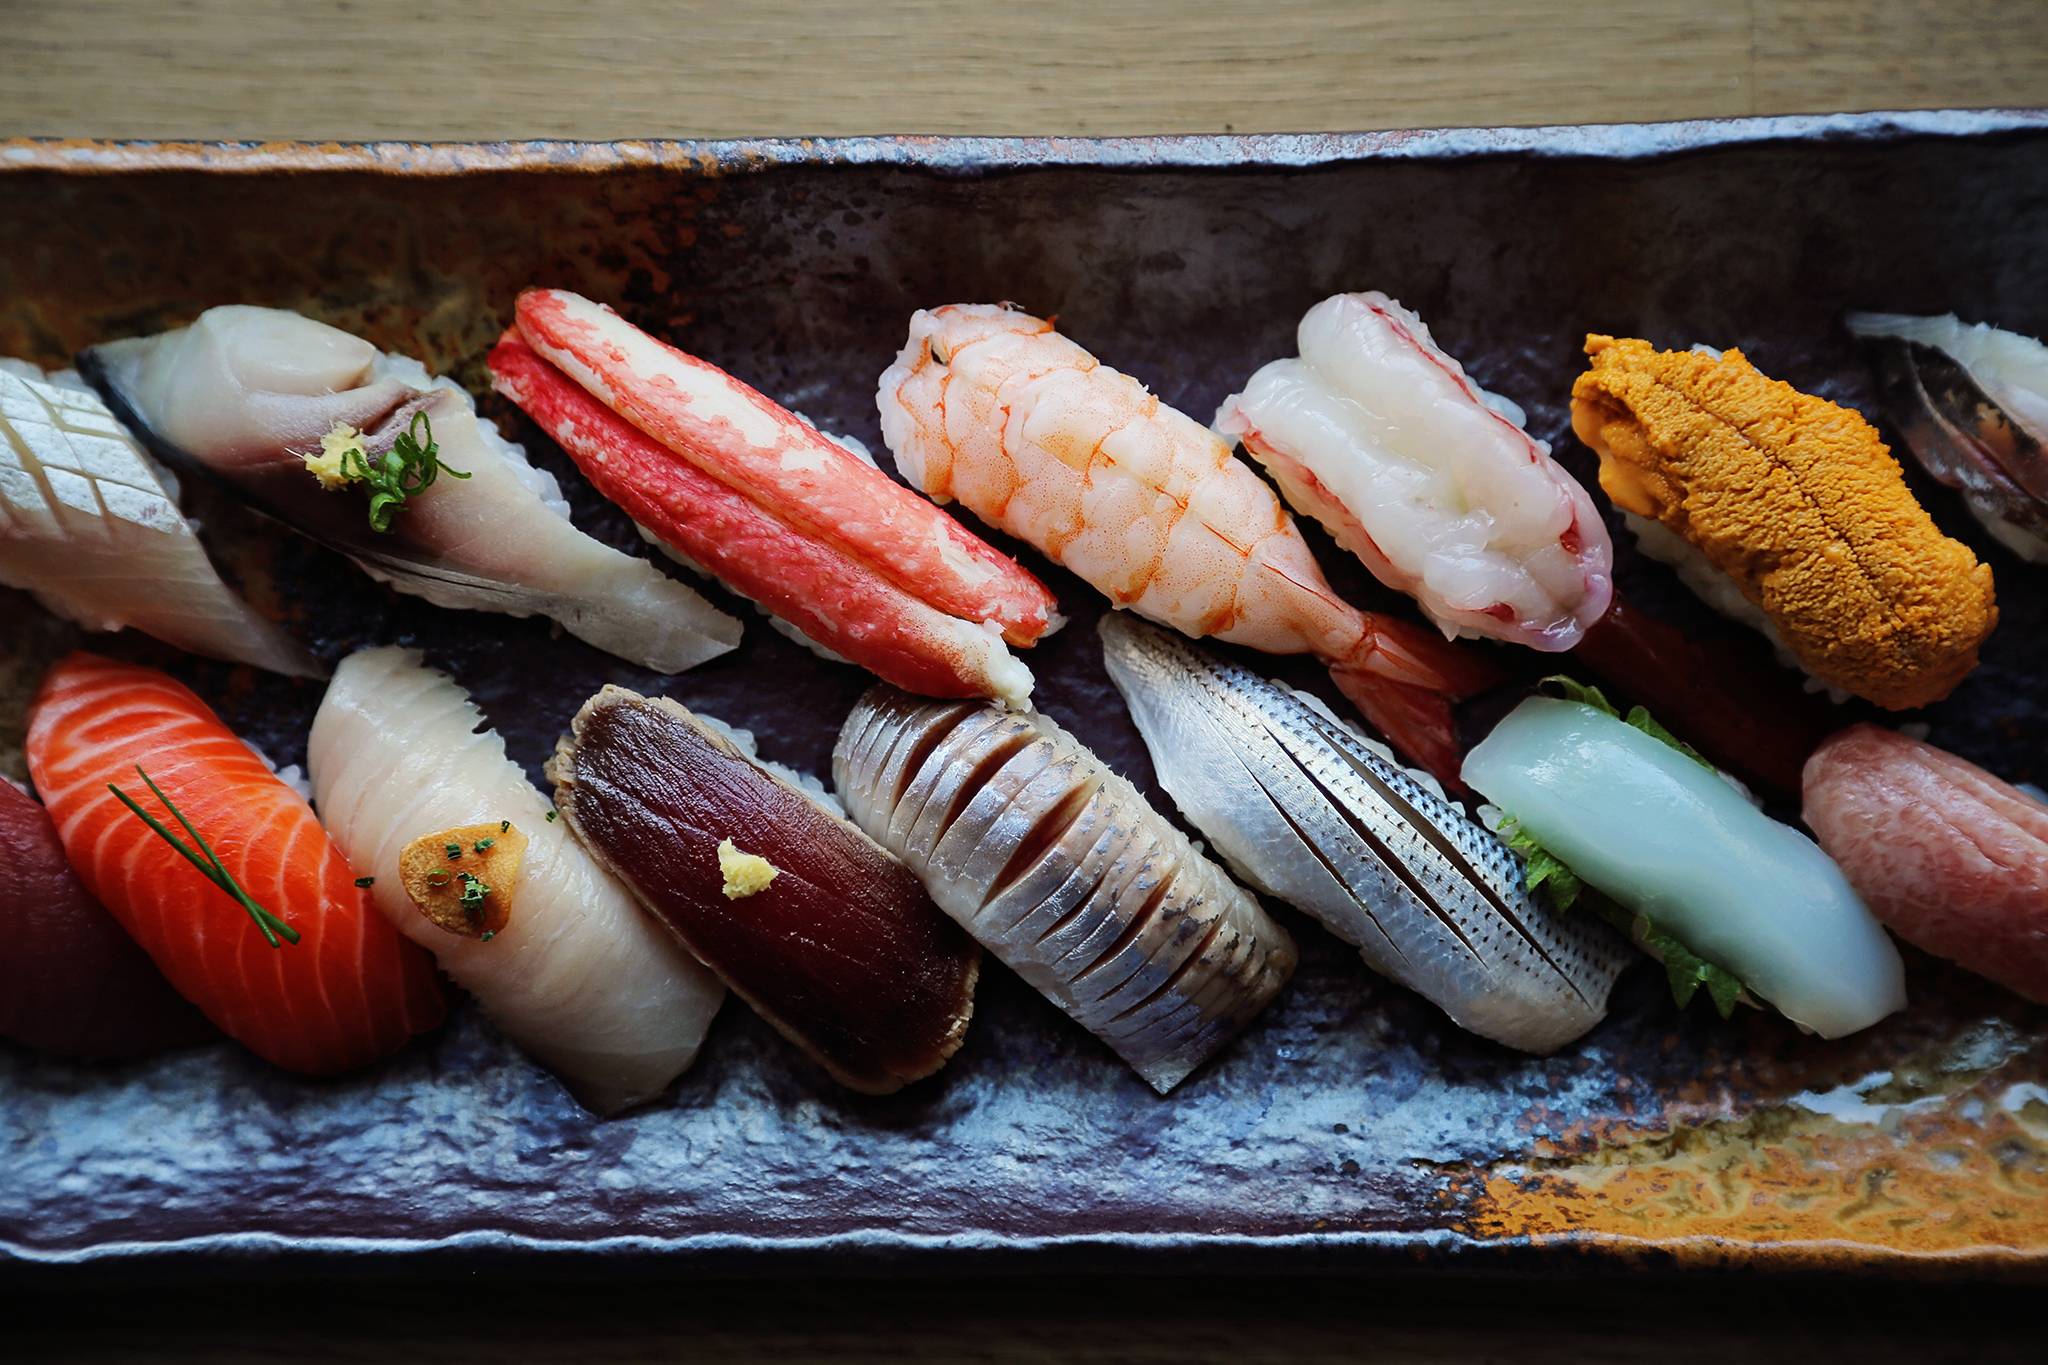 Best sushi restaurants in america for sushi sashimi and sake for Fish market restaurant nyc